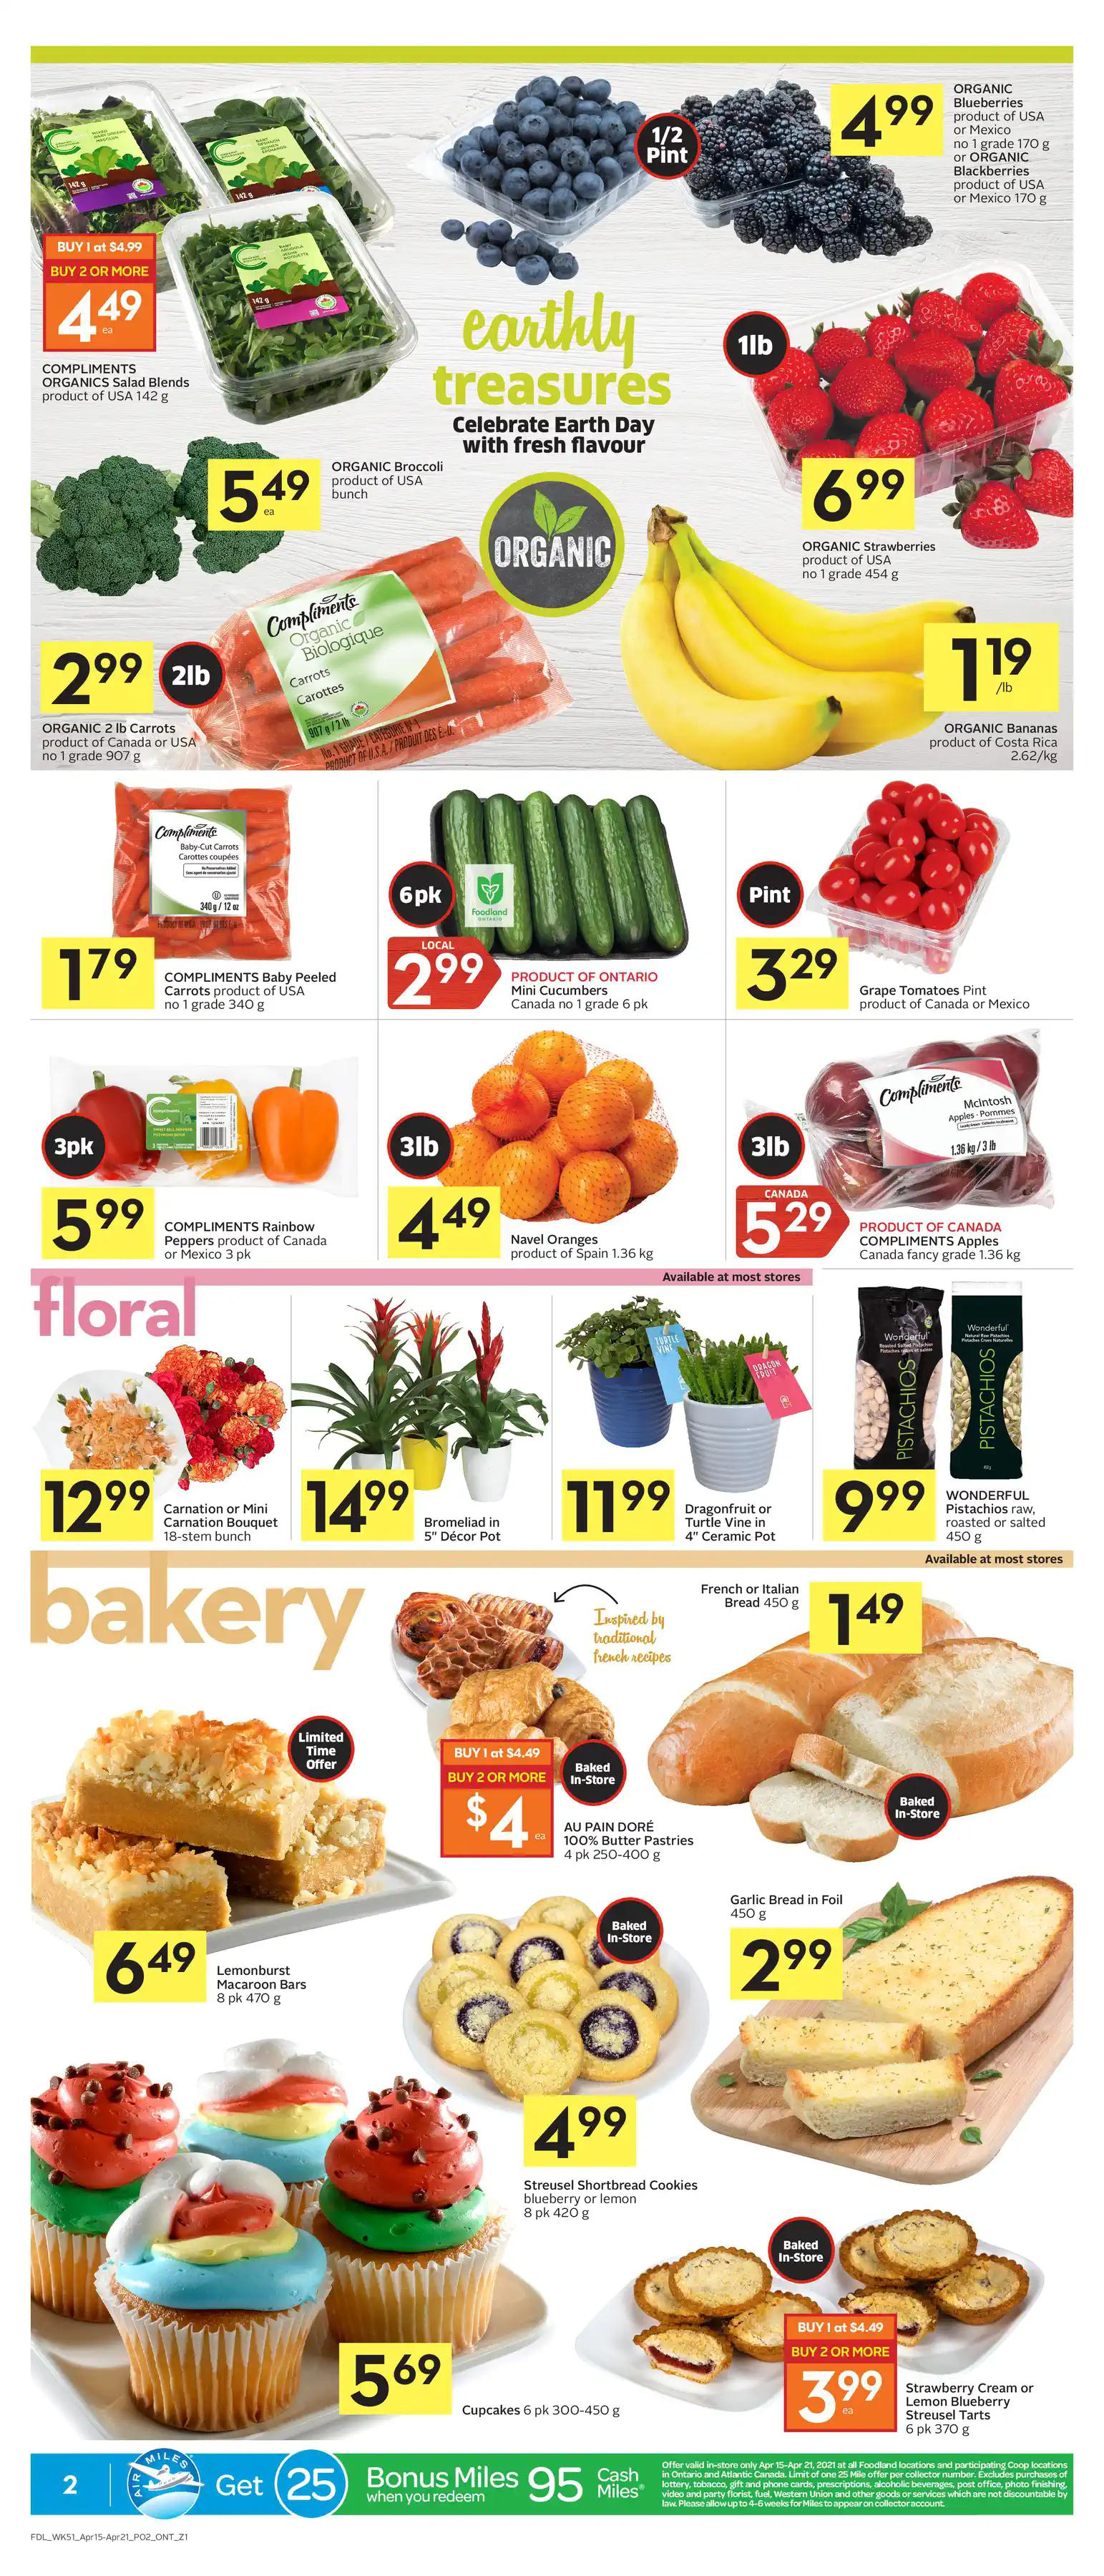 Foodland - Weekly Flyer Specials - Page 2